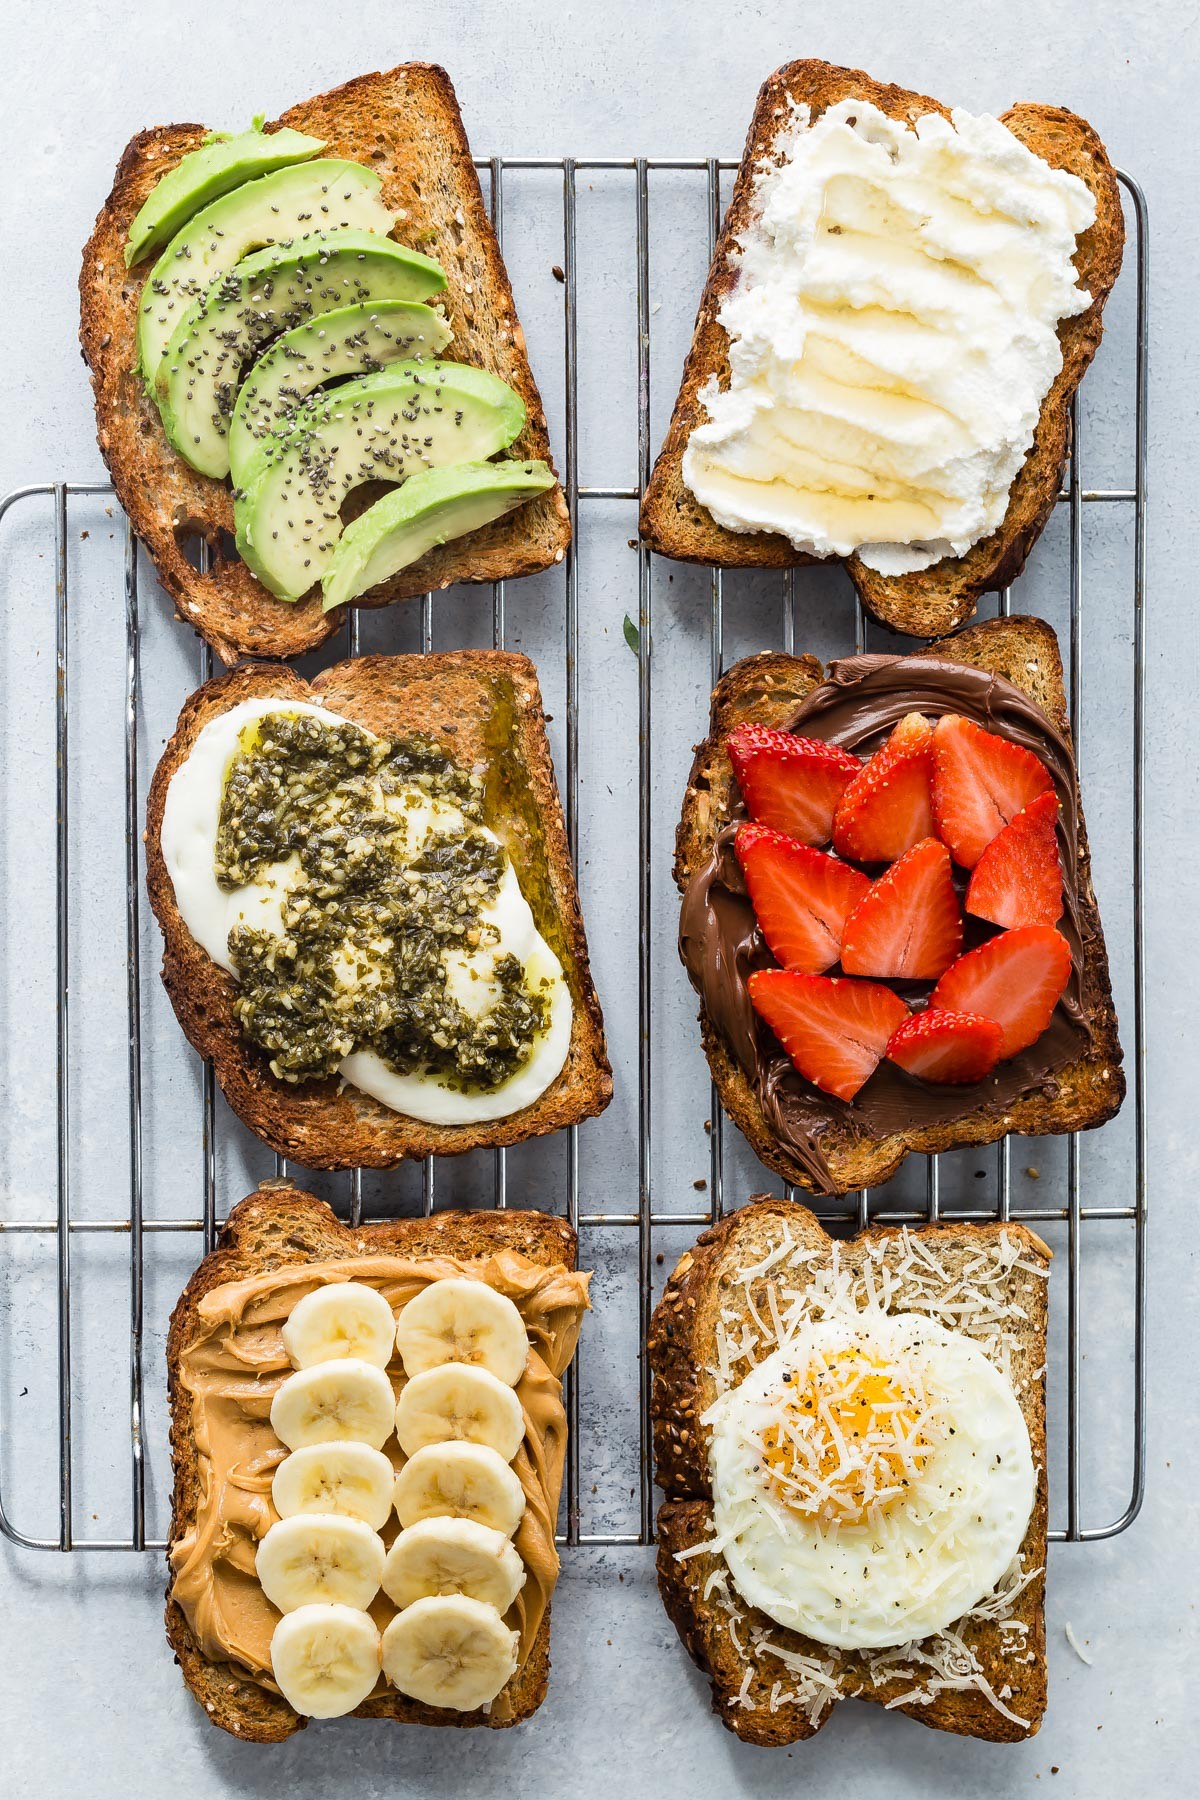 2 Ingredient Toast 6 Ways from weelicious.com